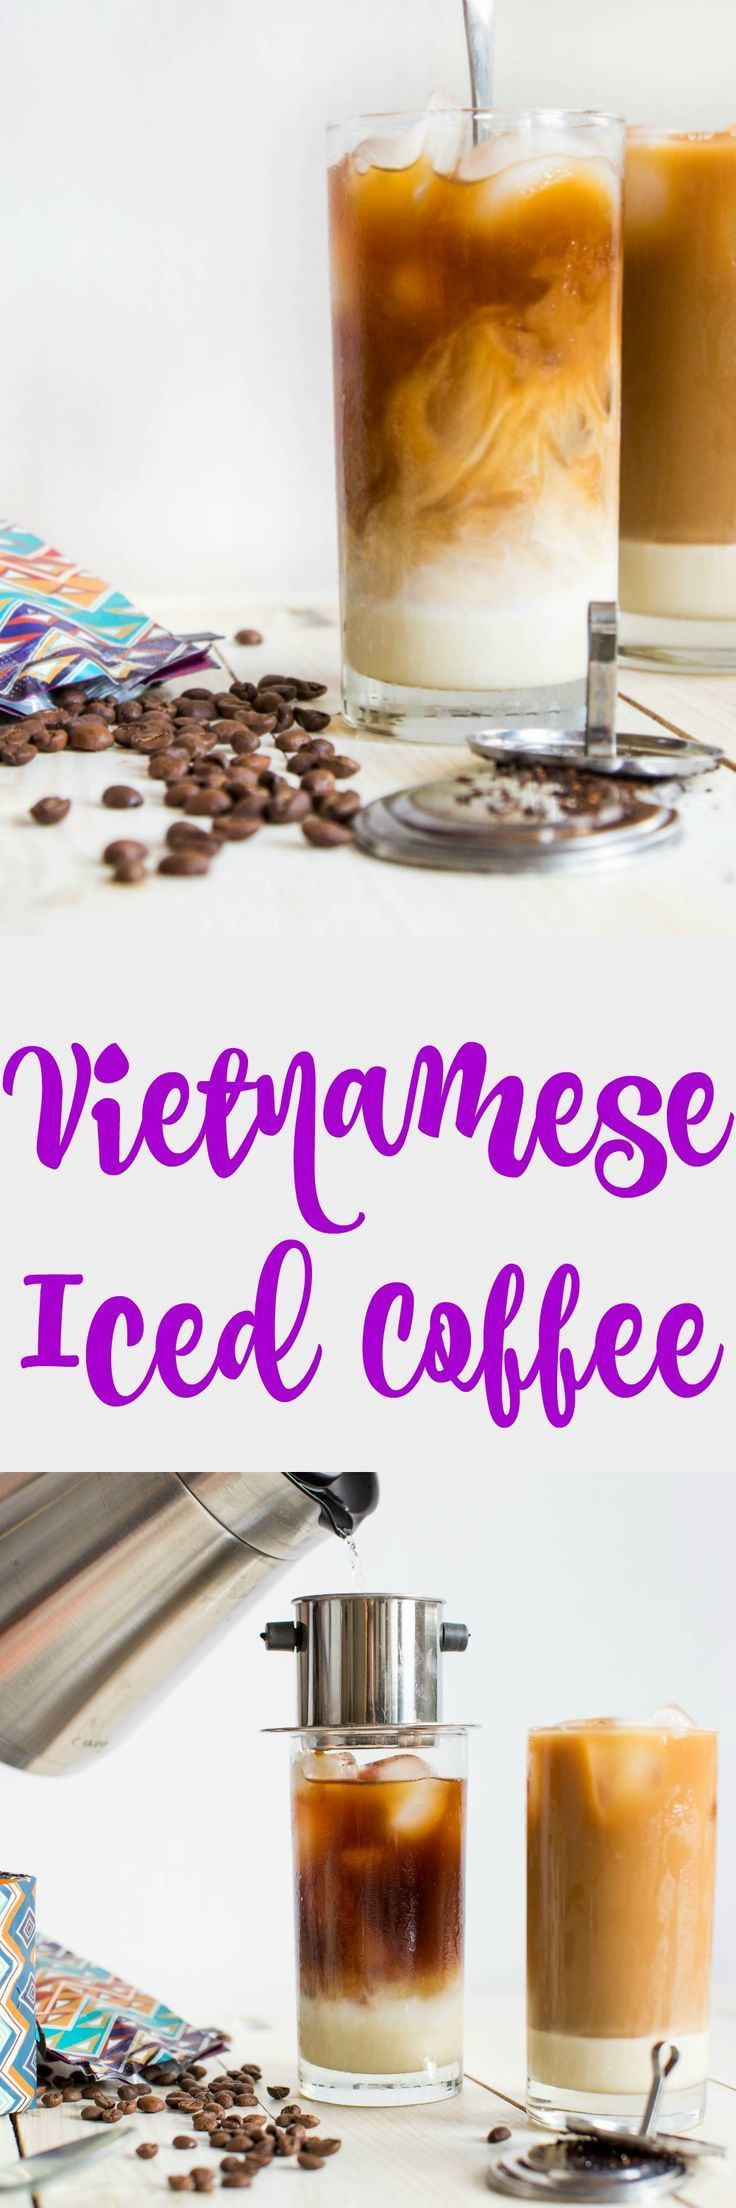 Vietnamese Iced Coffee is a refreshing beverage made from strong dark roast coffee, creamy sweetened condensed milk, and ice. It�s intense and delicious!